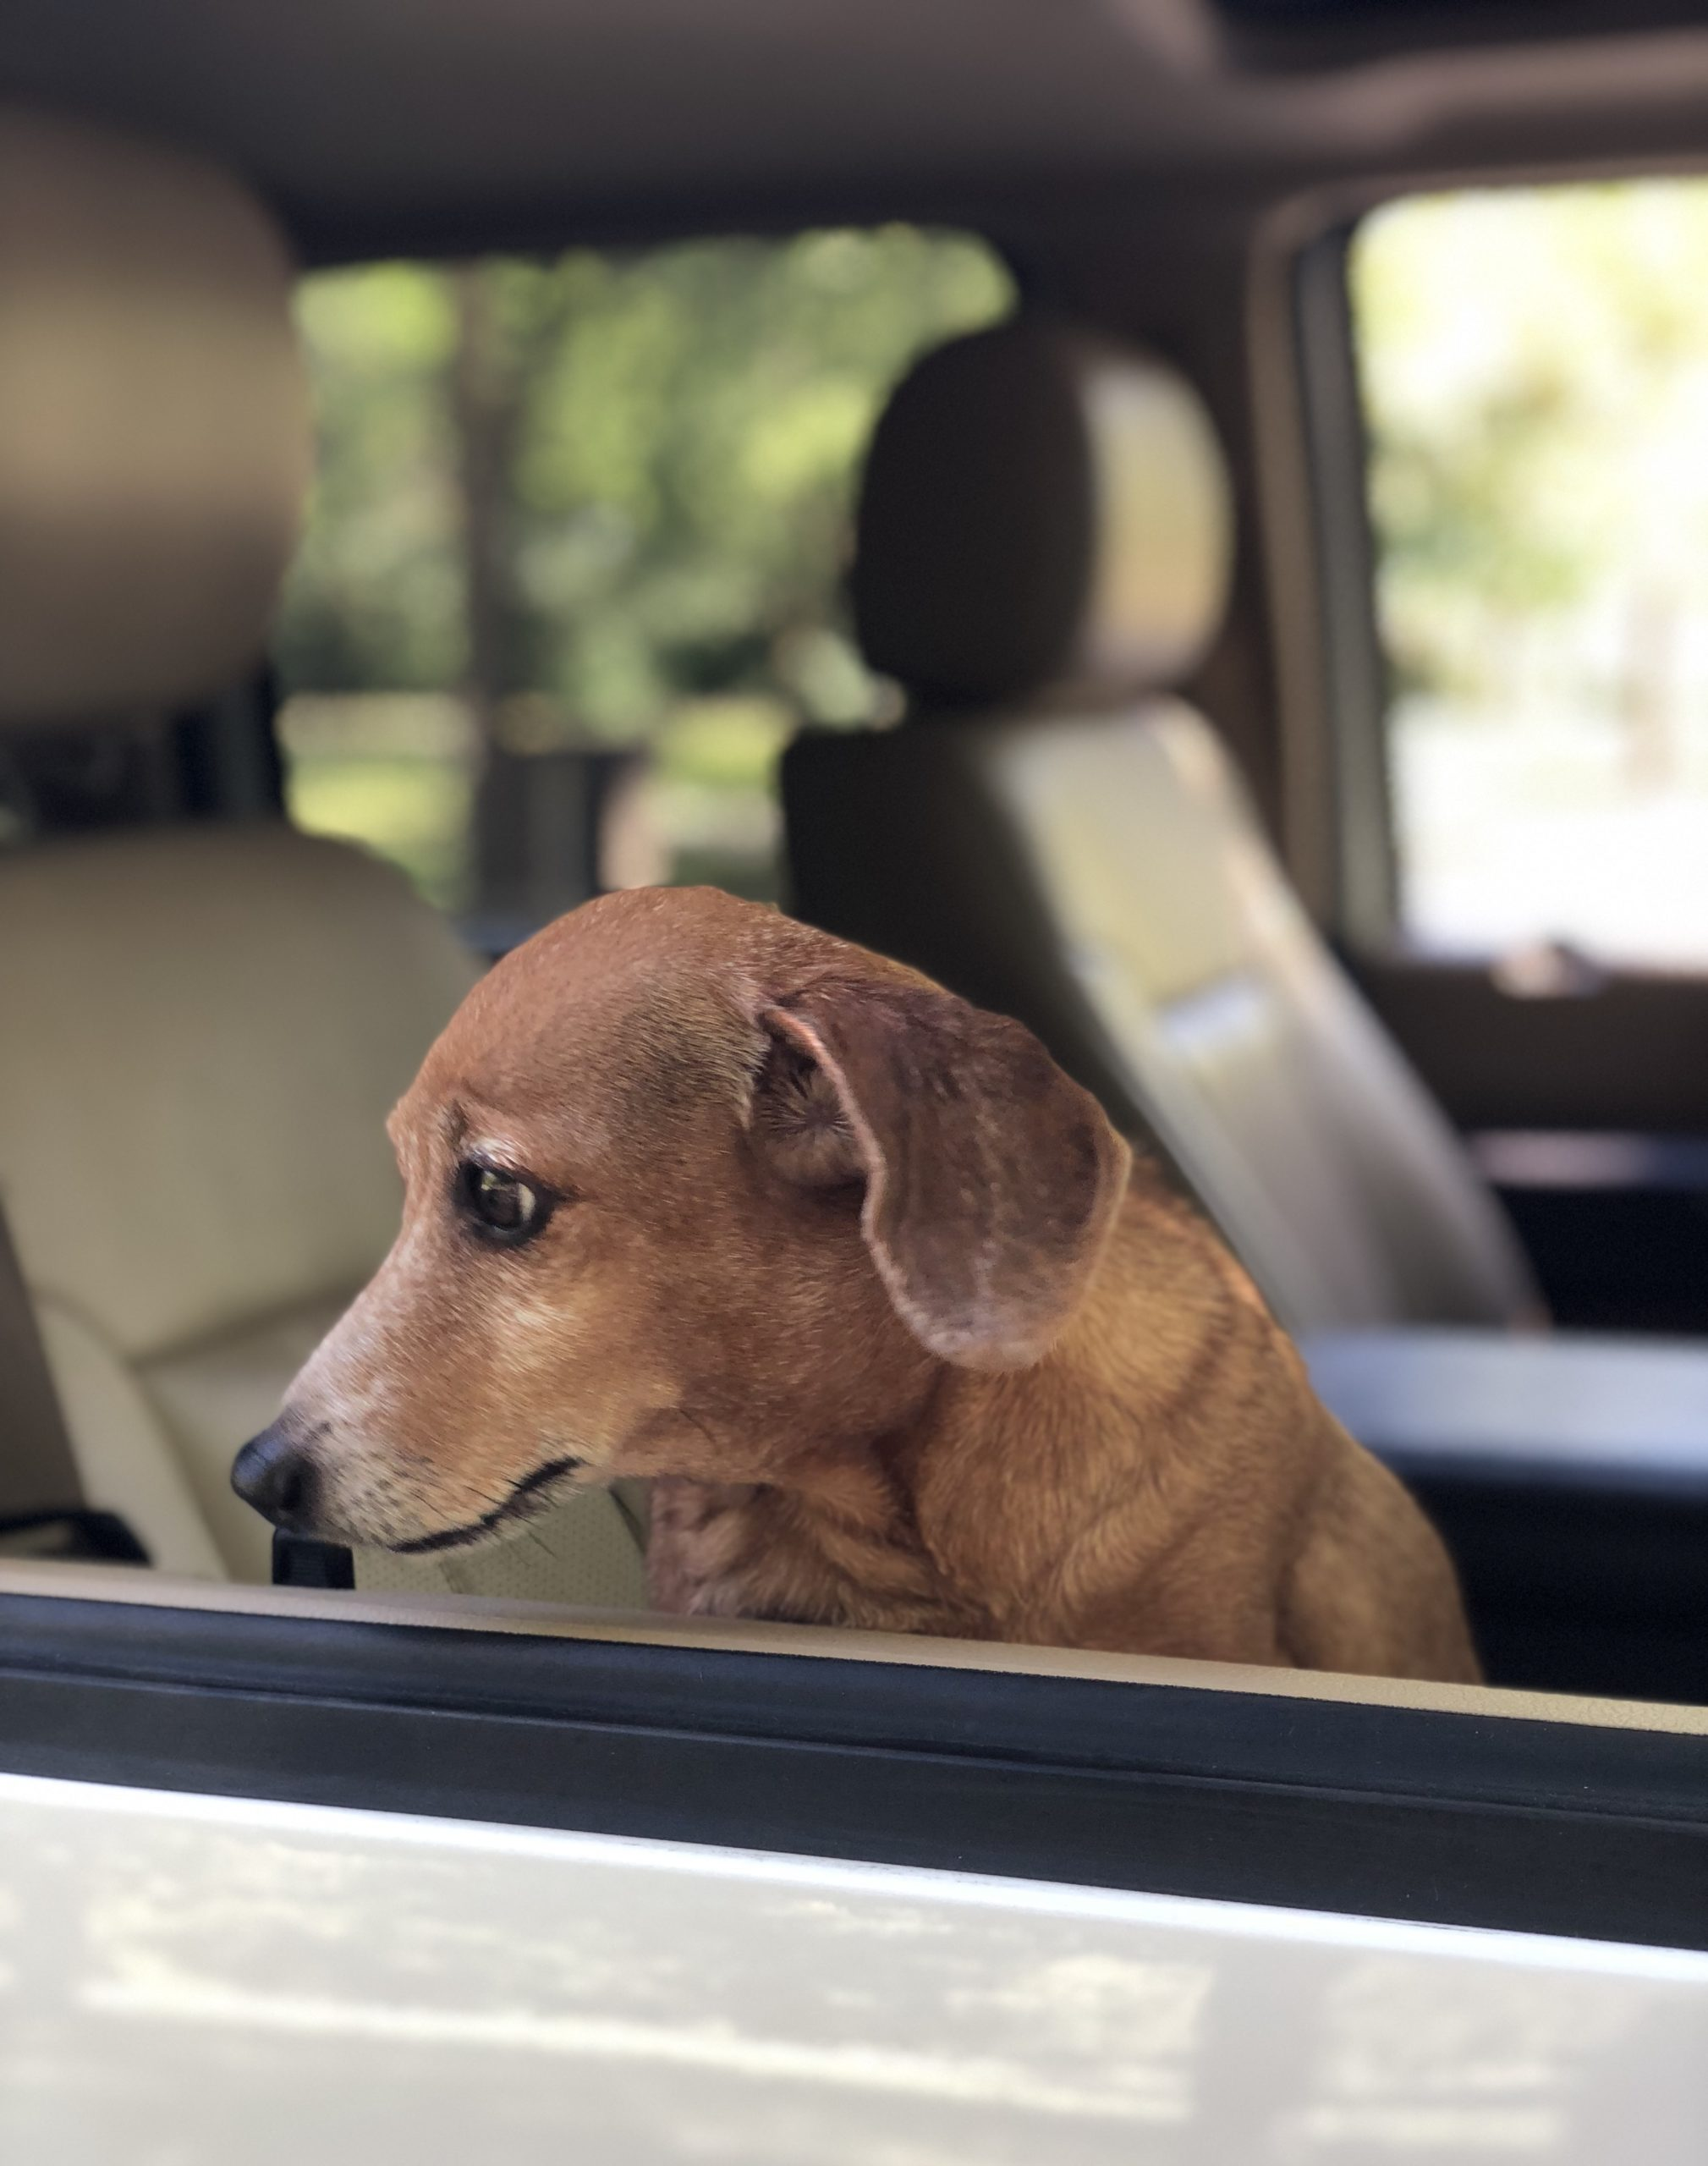 Sad Dachshund Looking Out Of Car Window